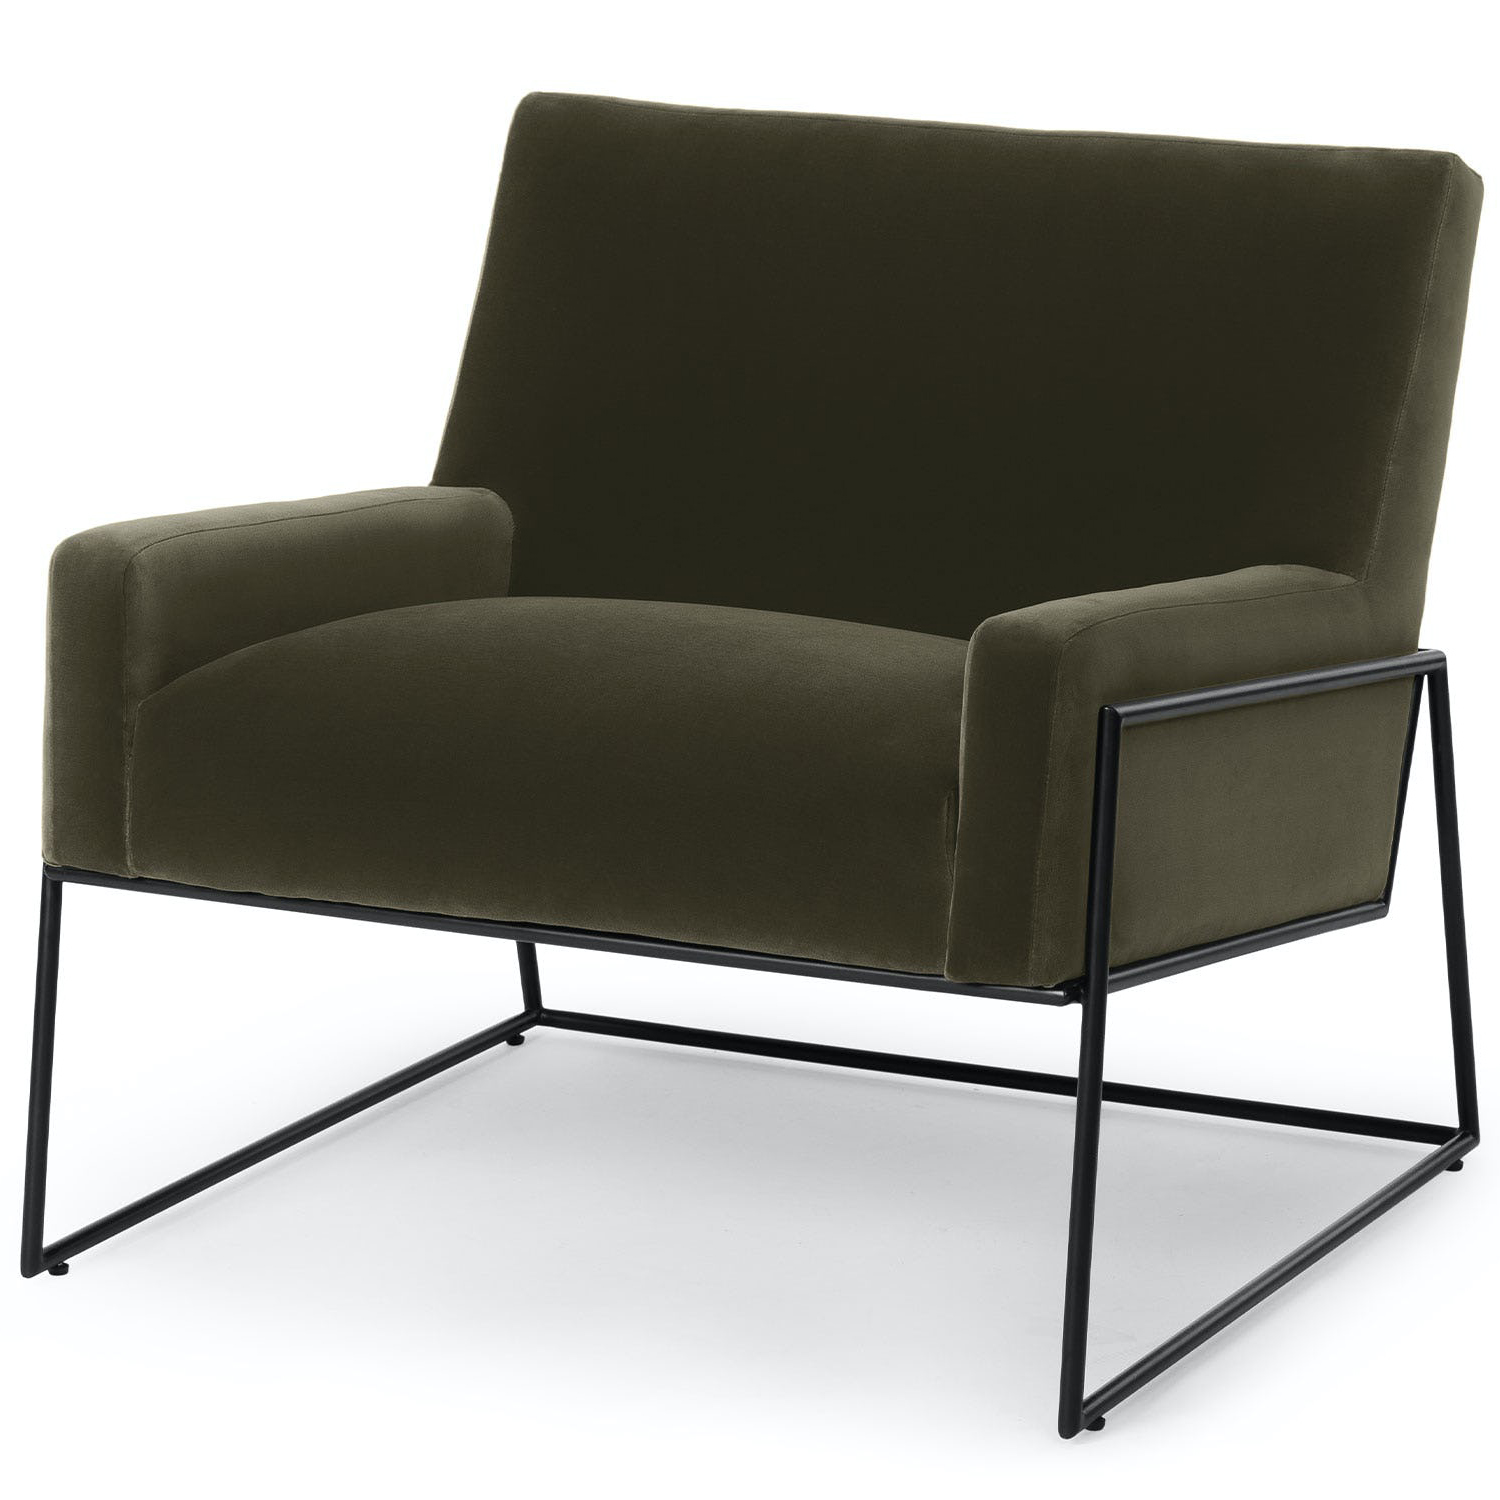 Article Regis Lounge Chair in Juniper Product Photo